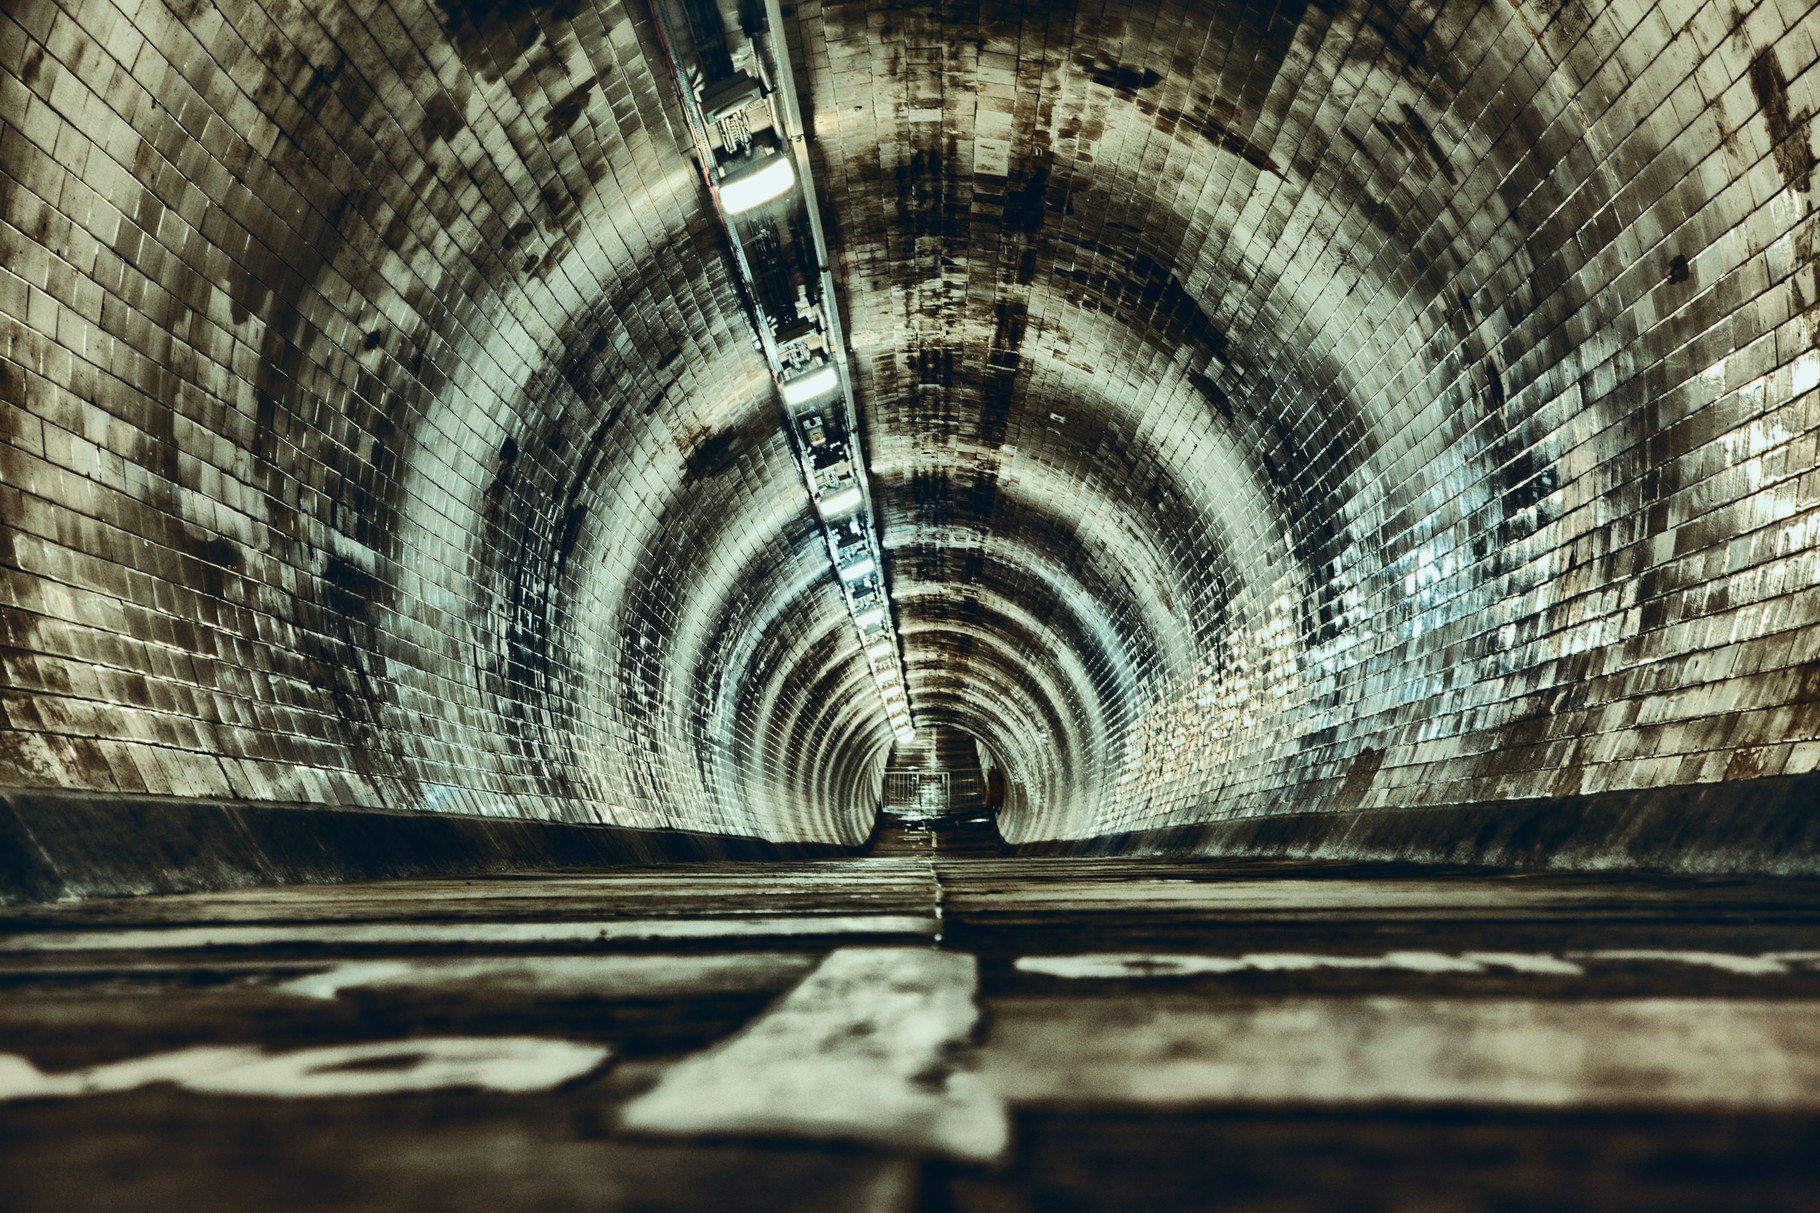 Alter Themse-Tunnel von 1825 London